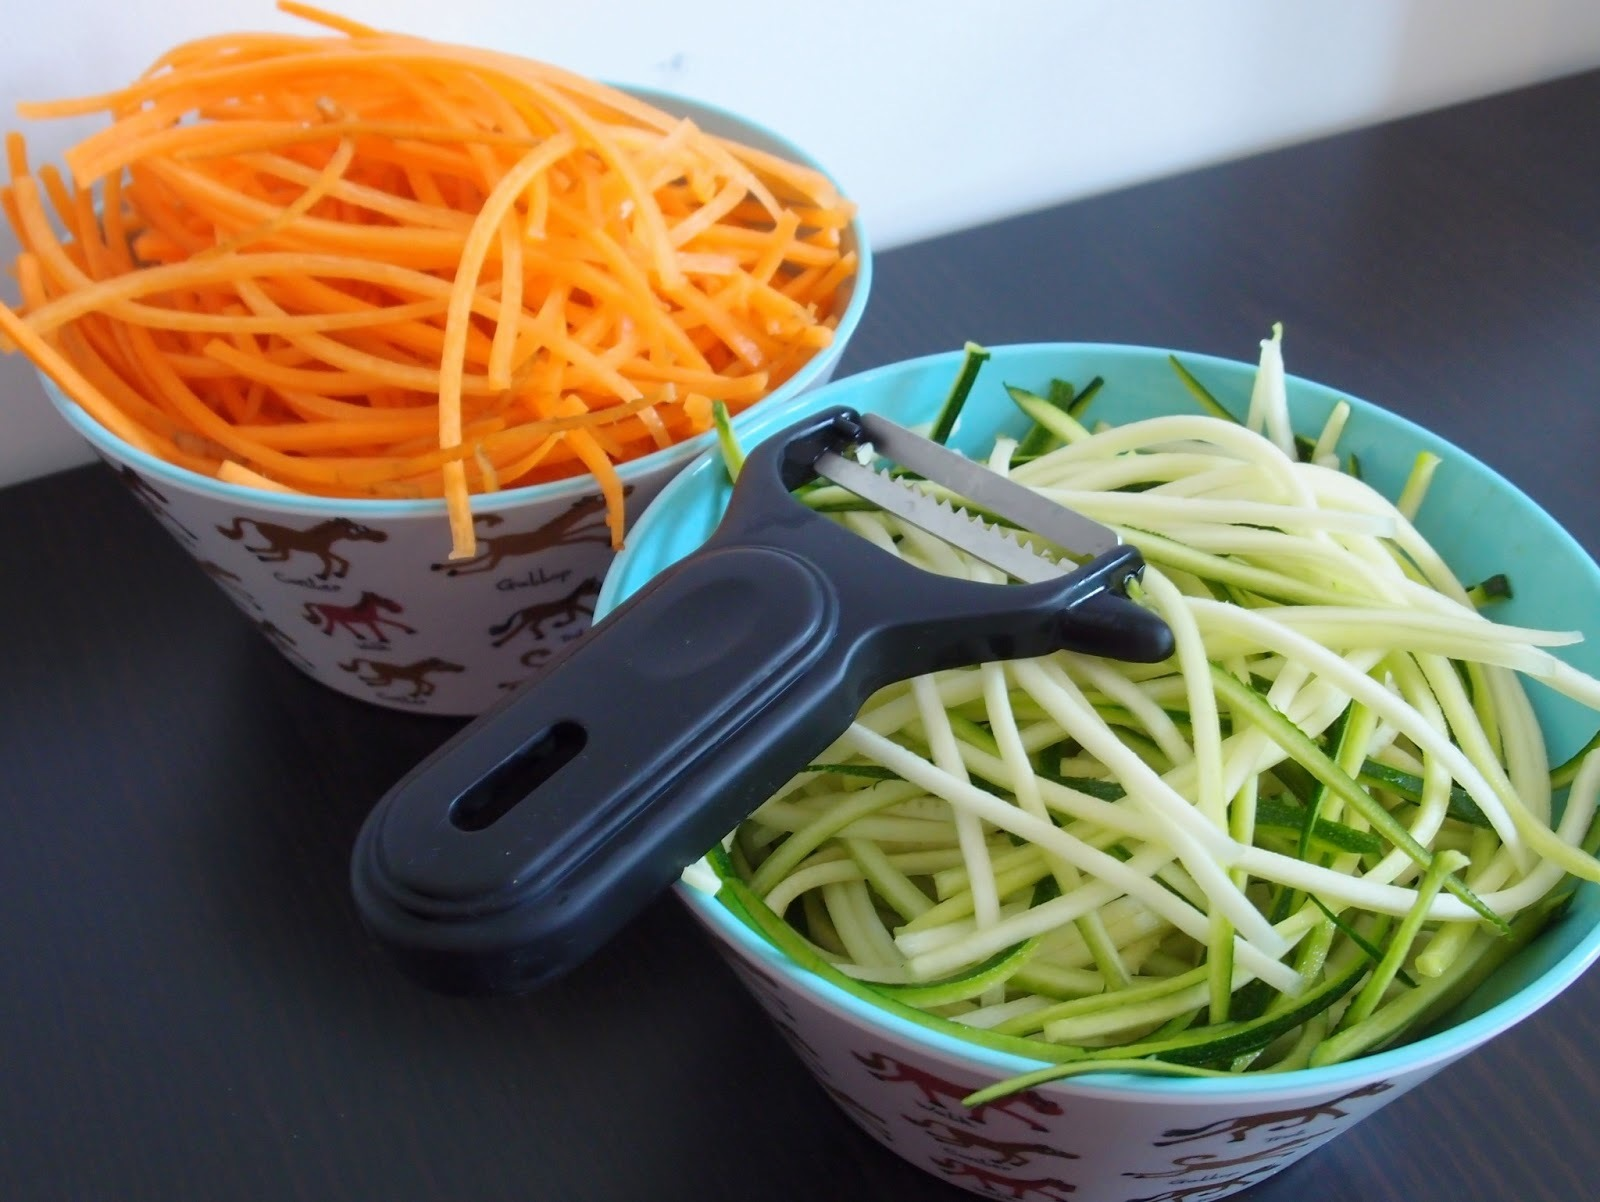 Spicy carrot and zucchini noodles